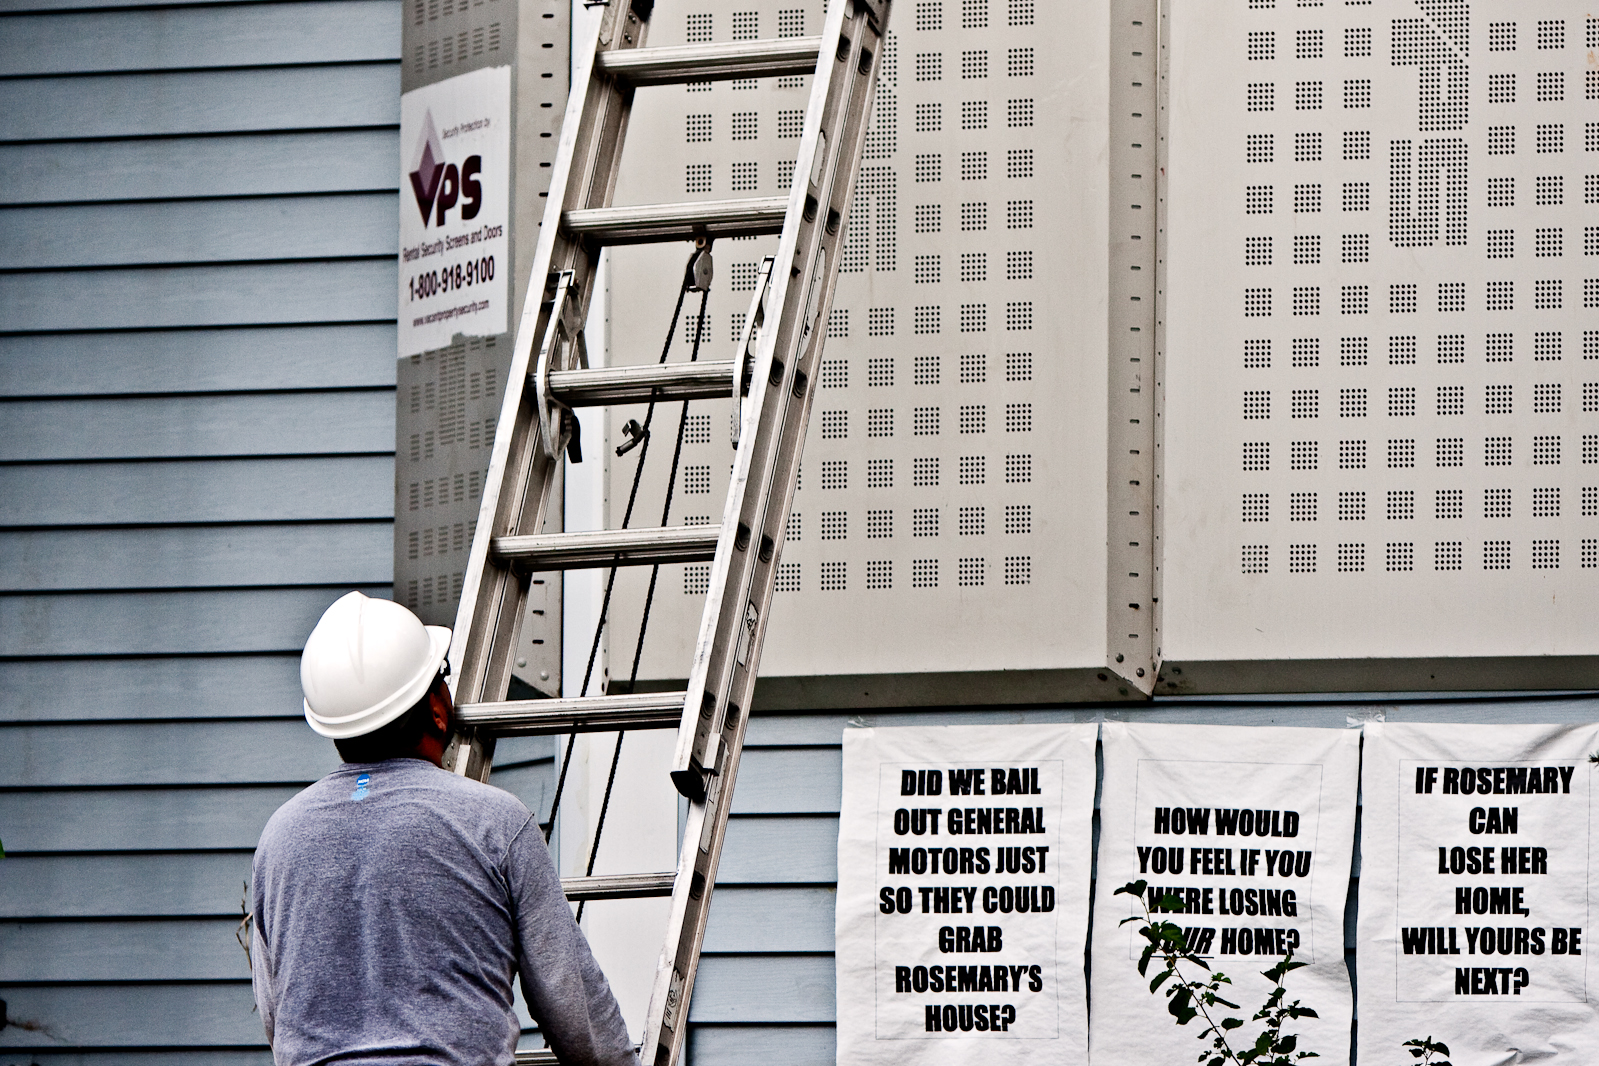 Worker installs security panels over windows after police evict woman from her foreclosed home in South Minneapolis, 2009. (Tony Webster, CC BY 2.0, Wikimedia Commons)